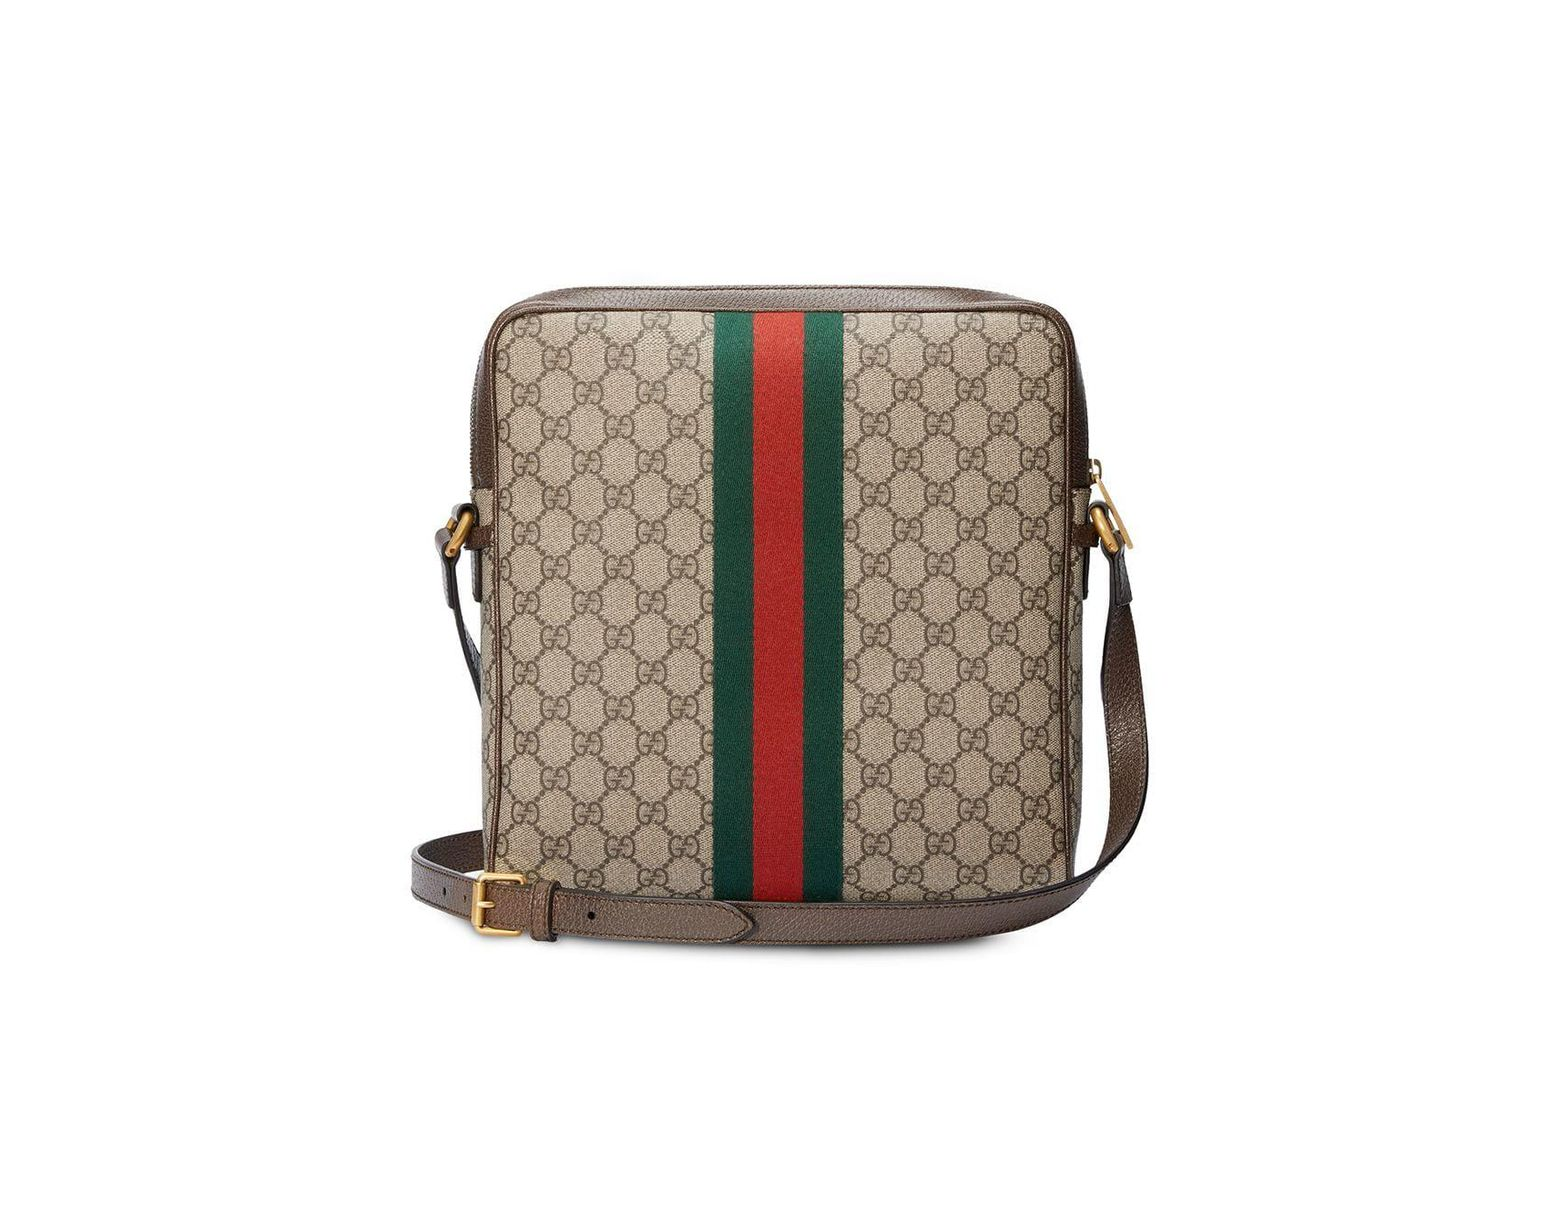 7a75037f5 Gucci Ophidia GG Medium Messenger Bag for Men - Save 19% - Lyst